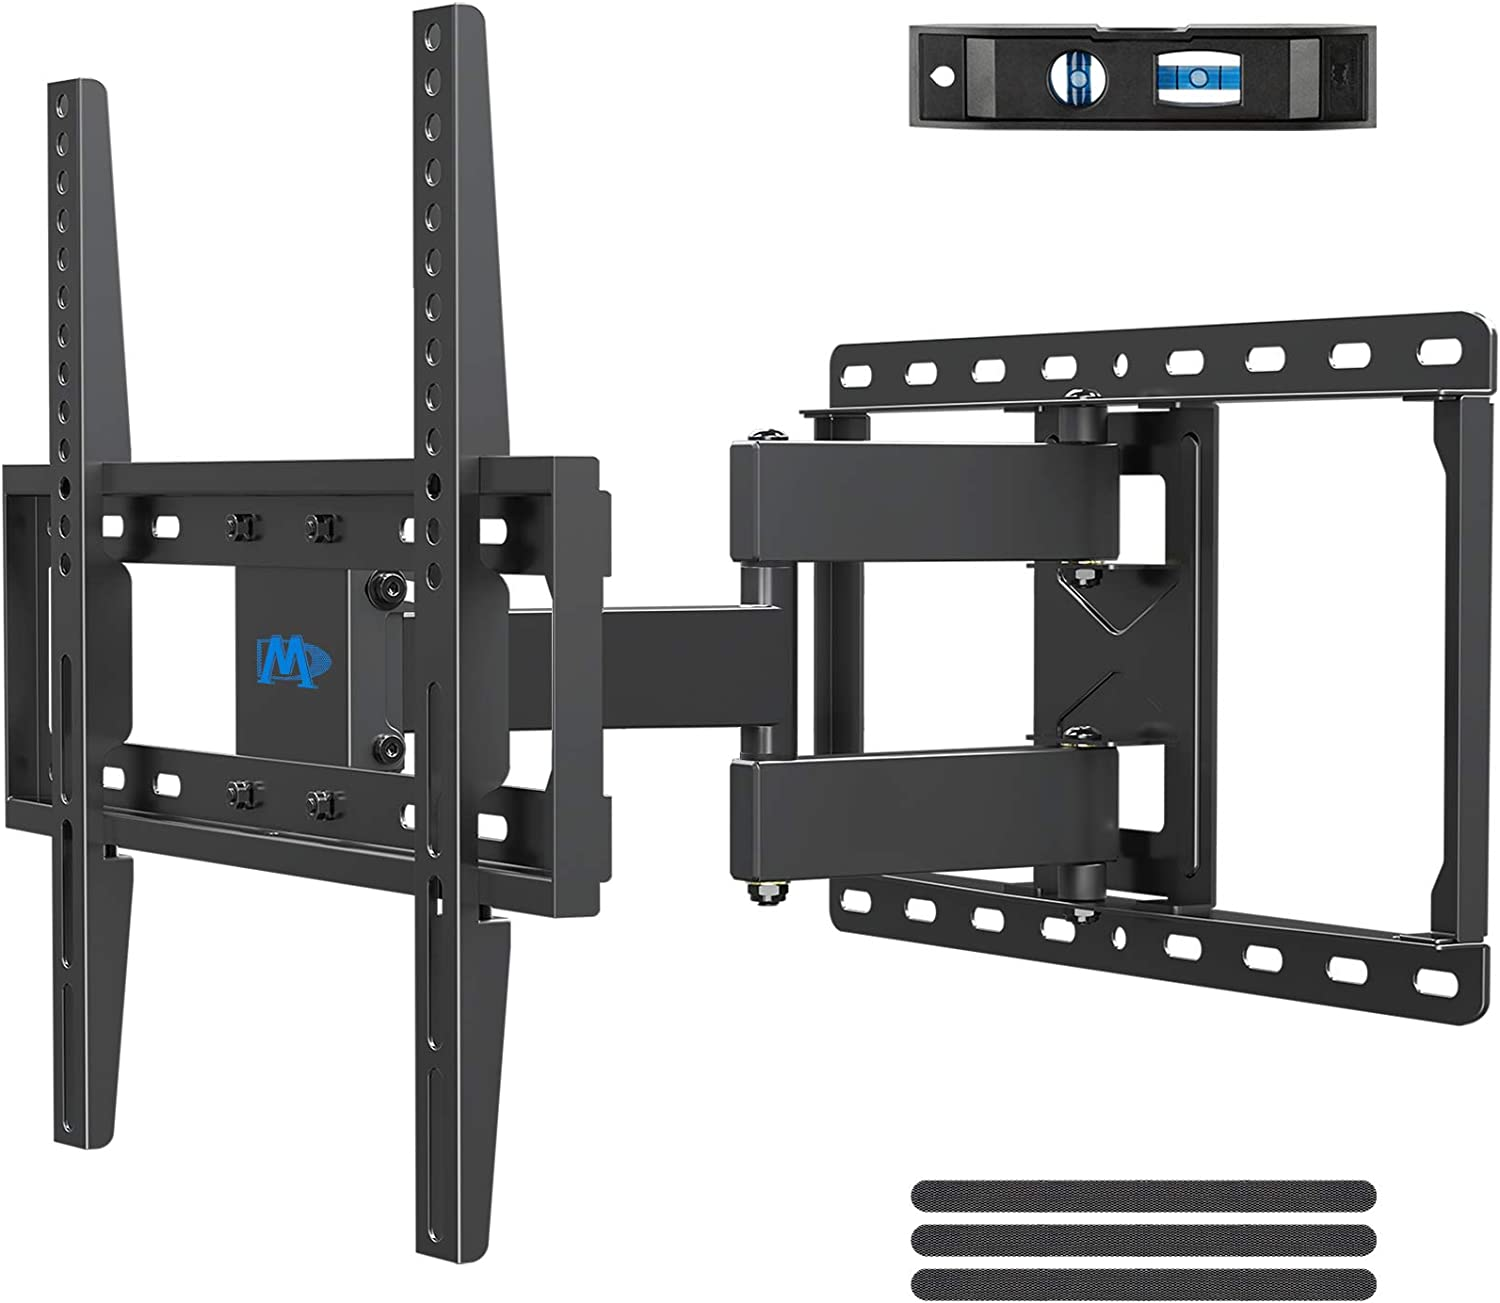 Amazon Com Mounting Dream Tv Wall Mount Bracket Full Motion With Articulating Arm Tv Bracket For Most 26 55 Inch Led Lcd Flat Screen Tv Mount Up To Vesa 400 X 400 Mm And